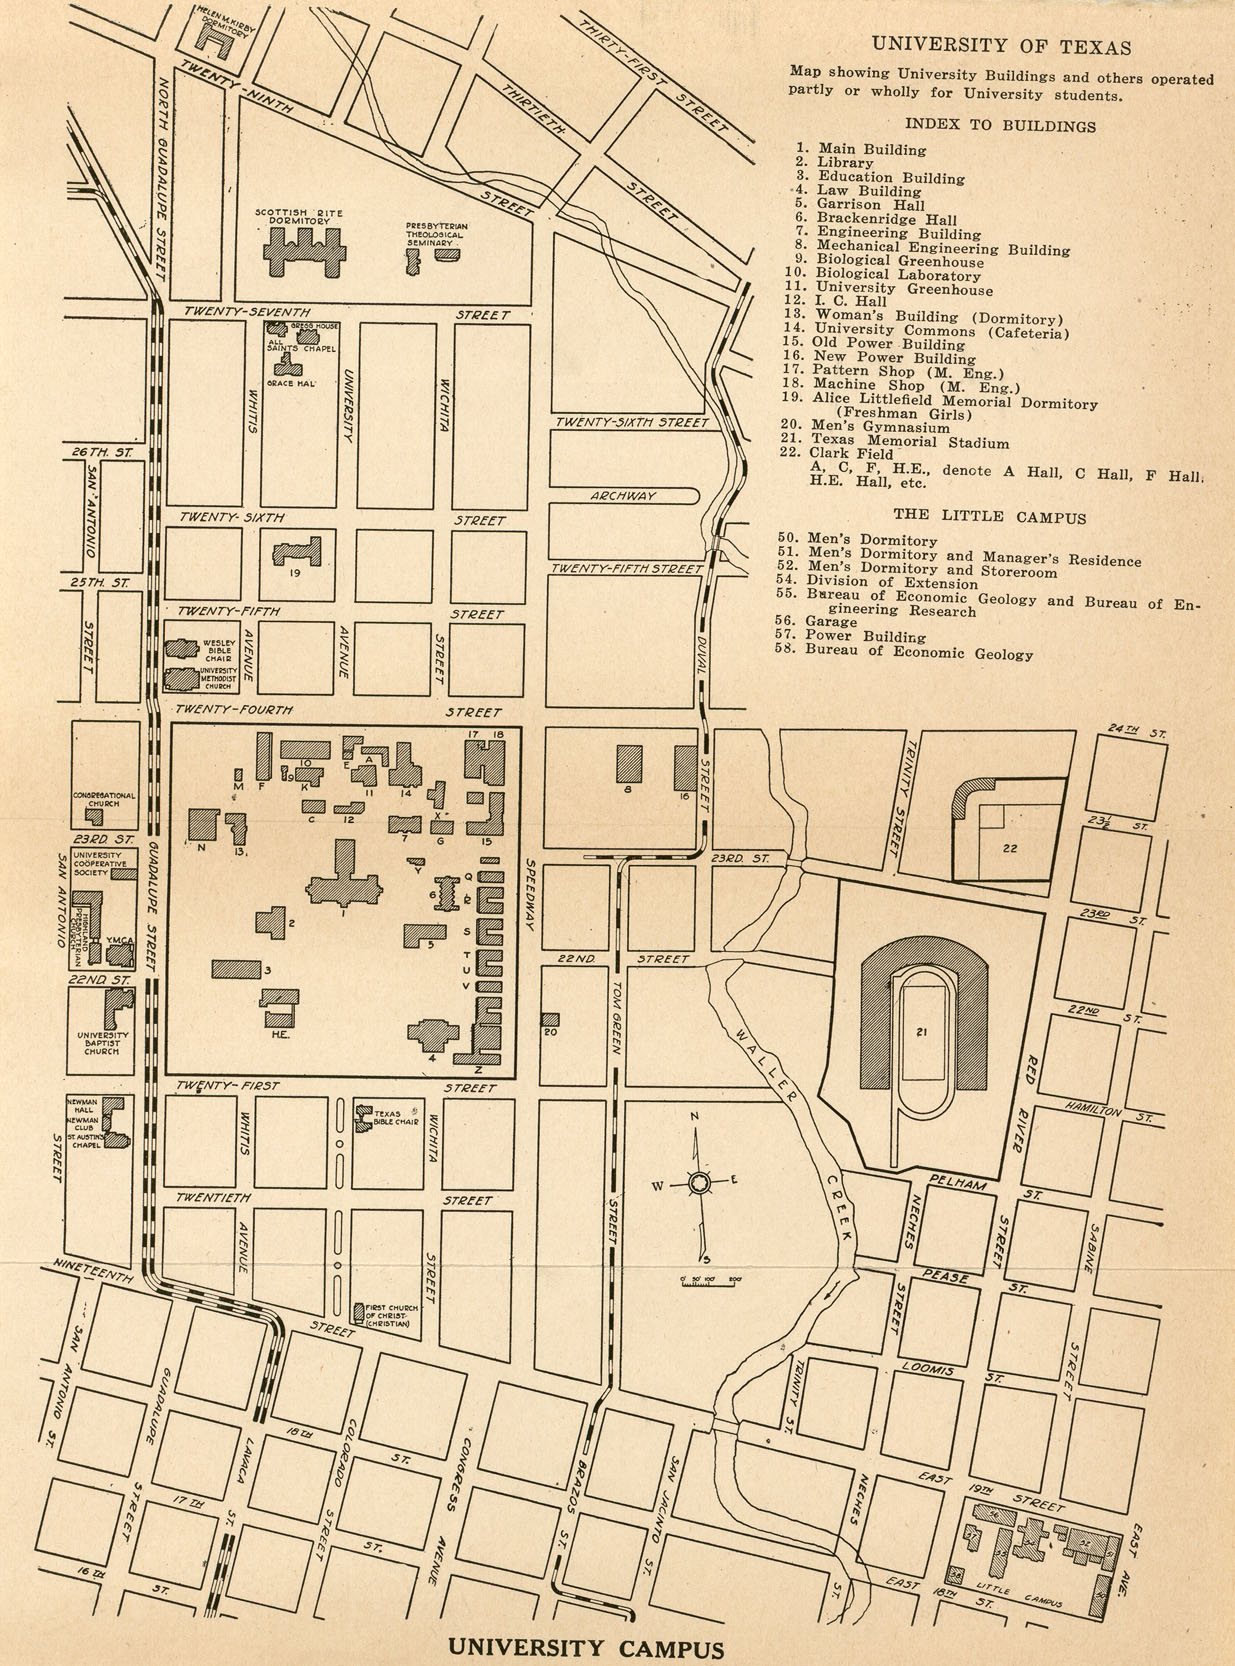 Historical Campus Maps University of Texas at Austin Perry – City Of Austin Site Plan Application